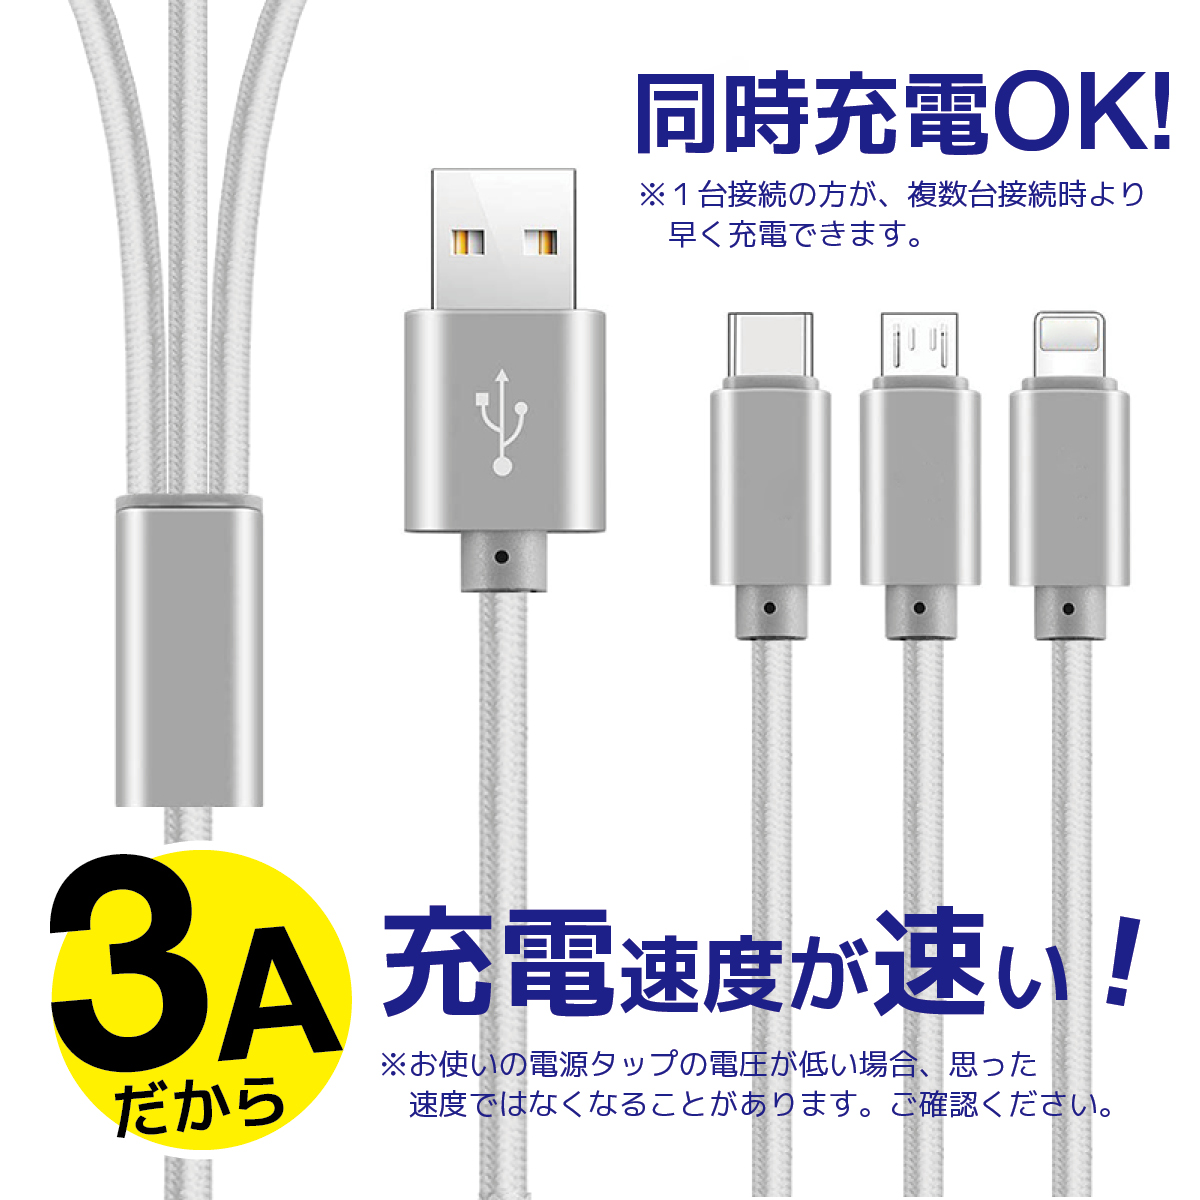 iPhone 充電ケーブル 3in1 ケーブル Android アンドロイド 充電ケーブル Type-C充電ケーブル 急速充電 安定 最大3A 1.2.m スマホ 充電ケーブル 充電ケーブル iPhone 3in1 microusb 最大3a 3in1 急速充電 3A 1.2m ライトニング タイプC マイクロUSB TypeC microUSB iPhone iPad Android アンドロイド スマホ ナイロン編み メール便送料無料